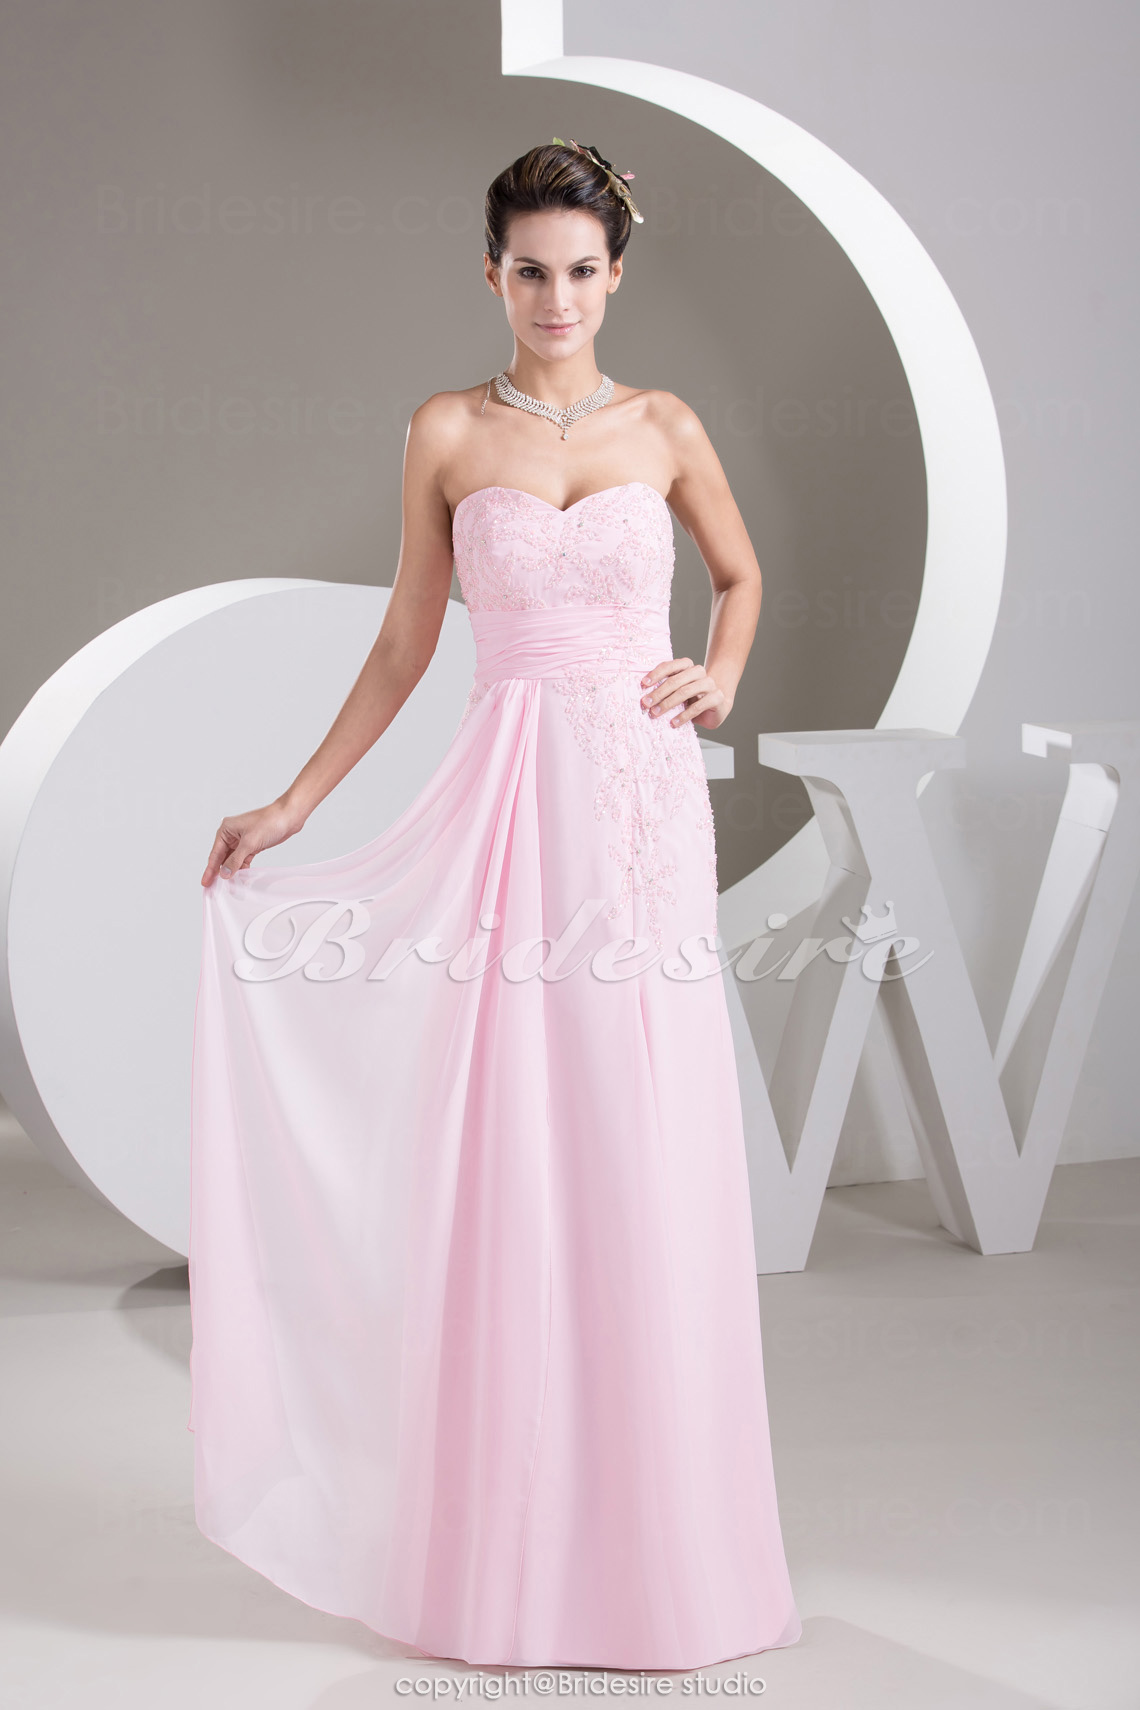 Sheath/Column Sweetheart Floor-length Sleeveless Chiffon Dress